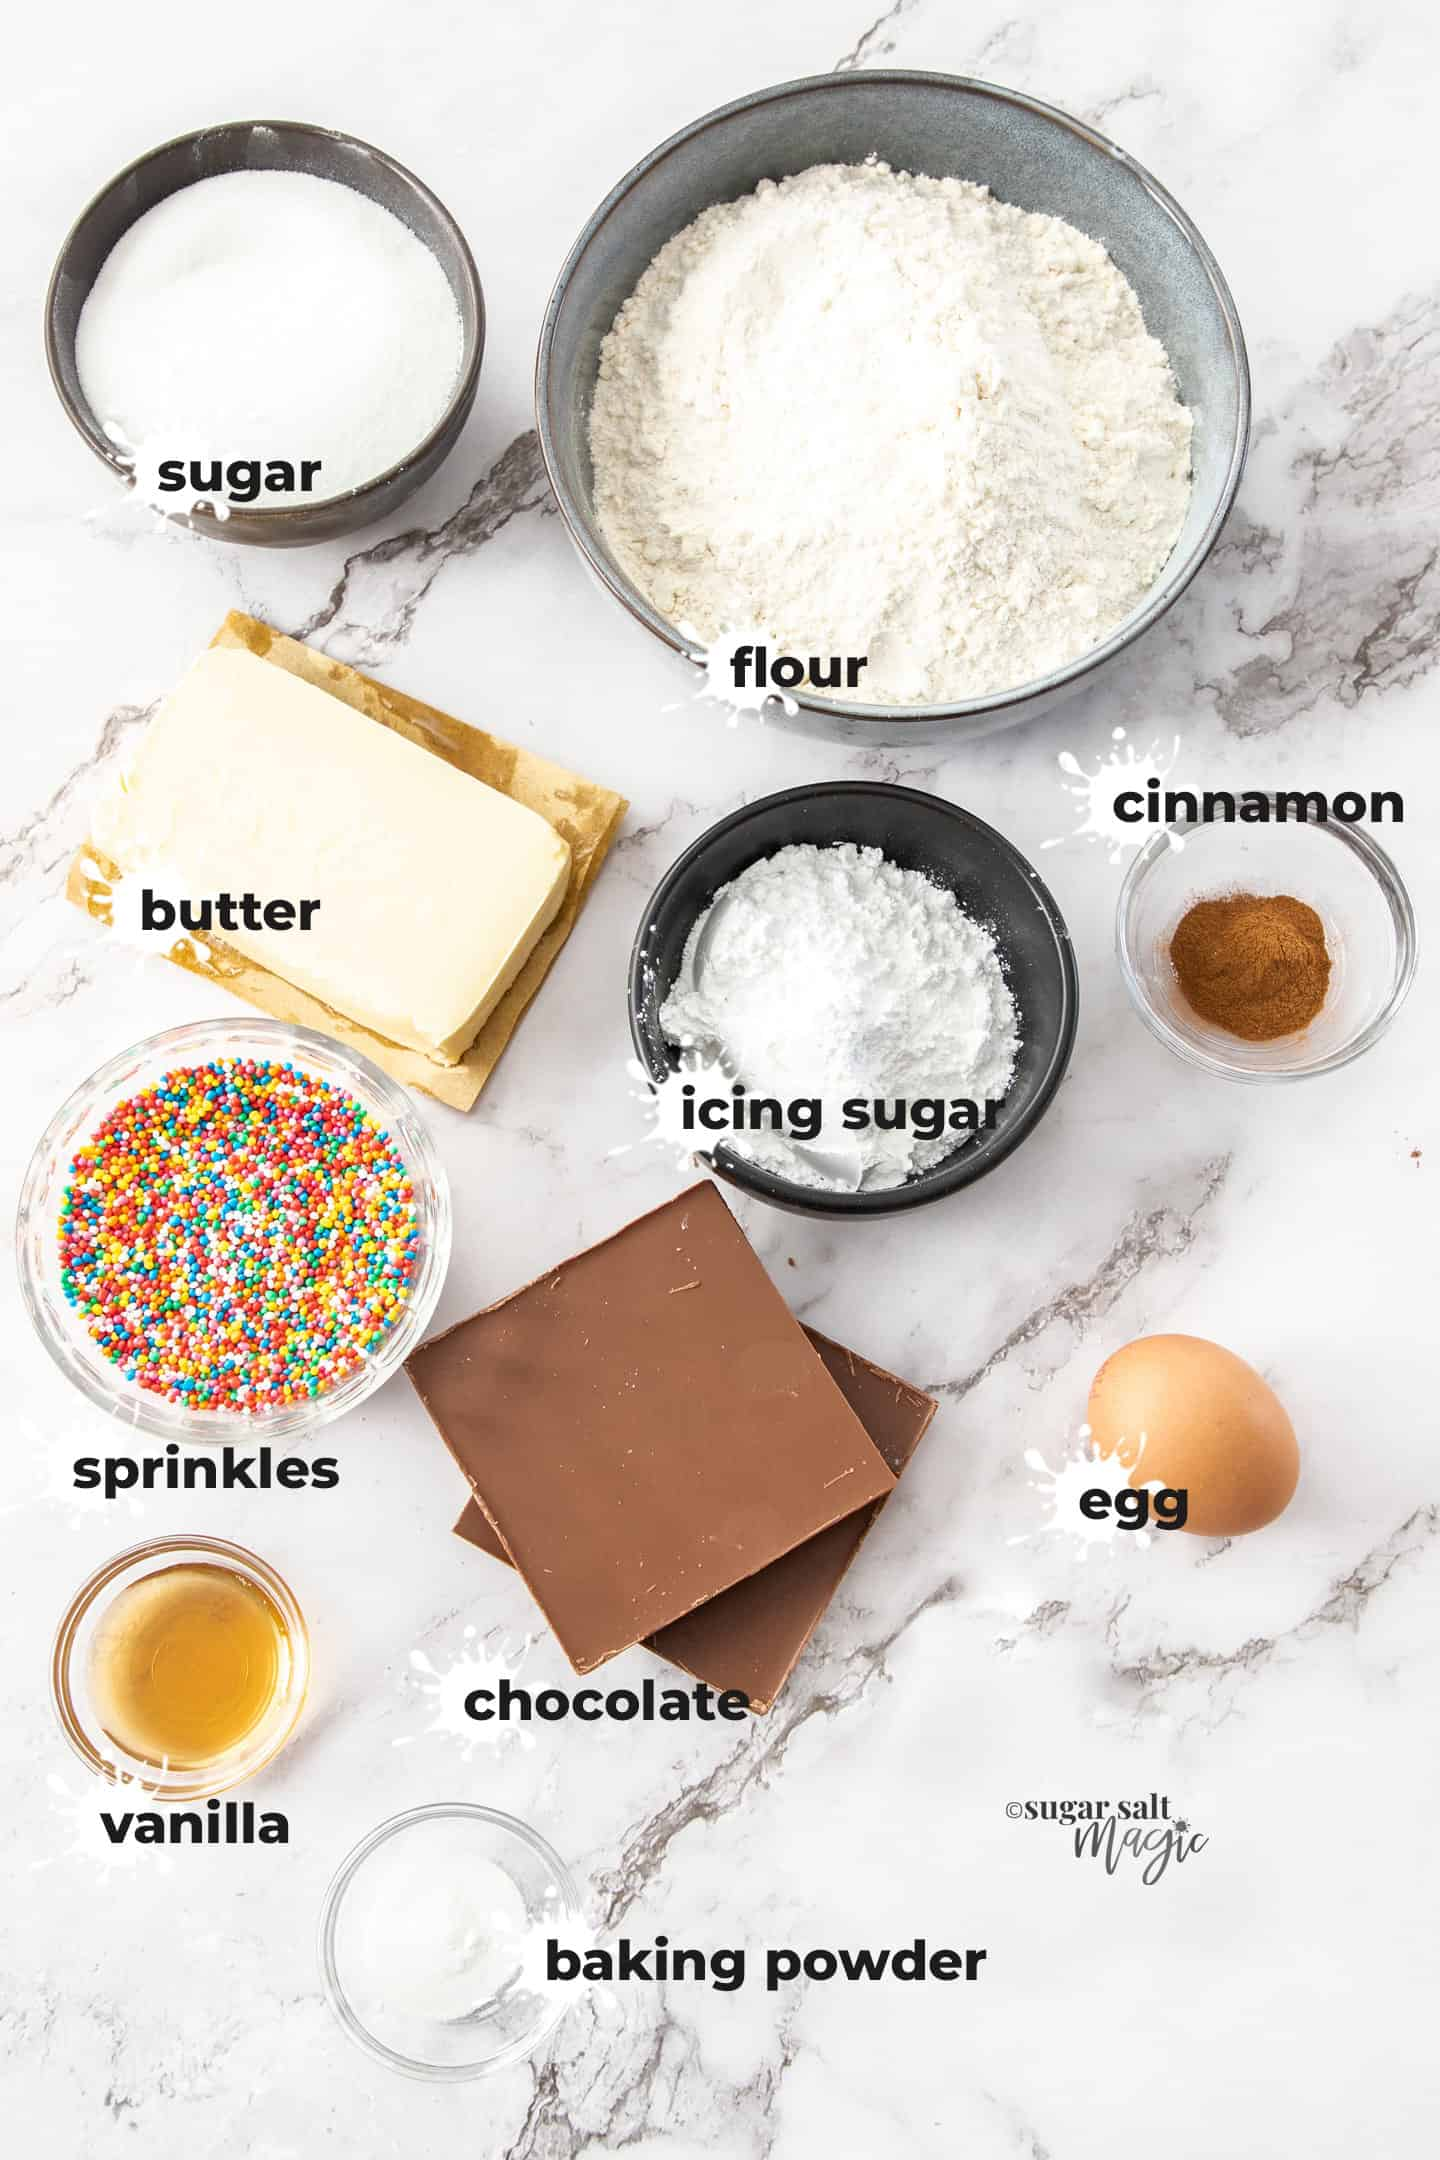 Ingredients for donut cookies in bowls on a white marble benchtop.